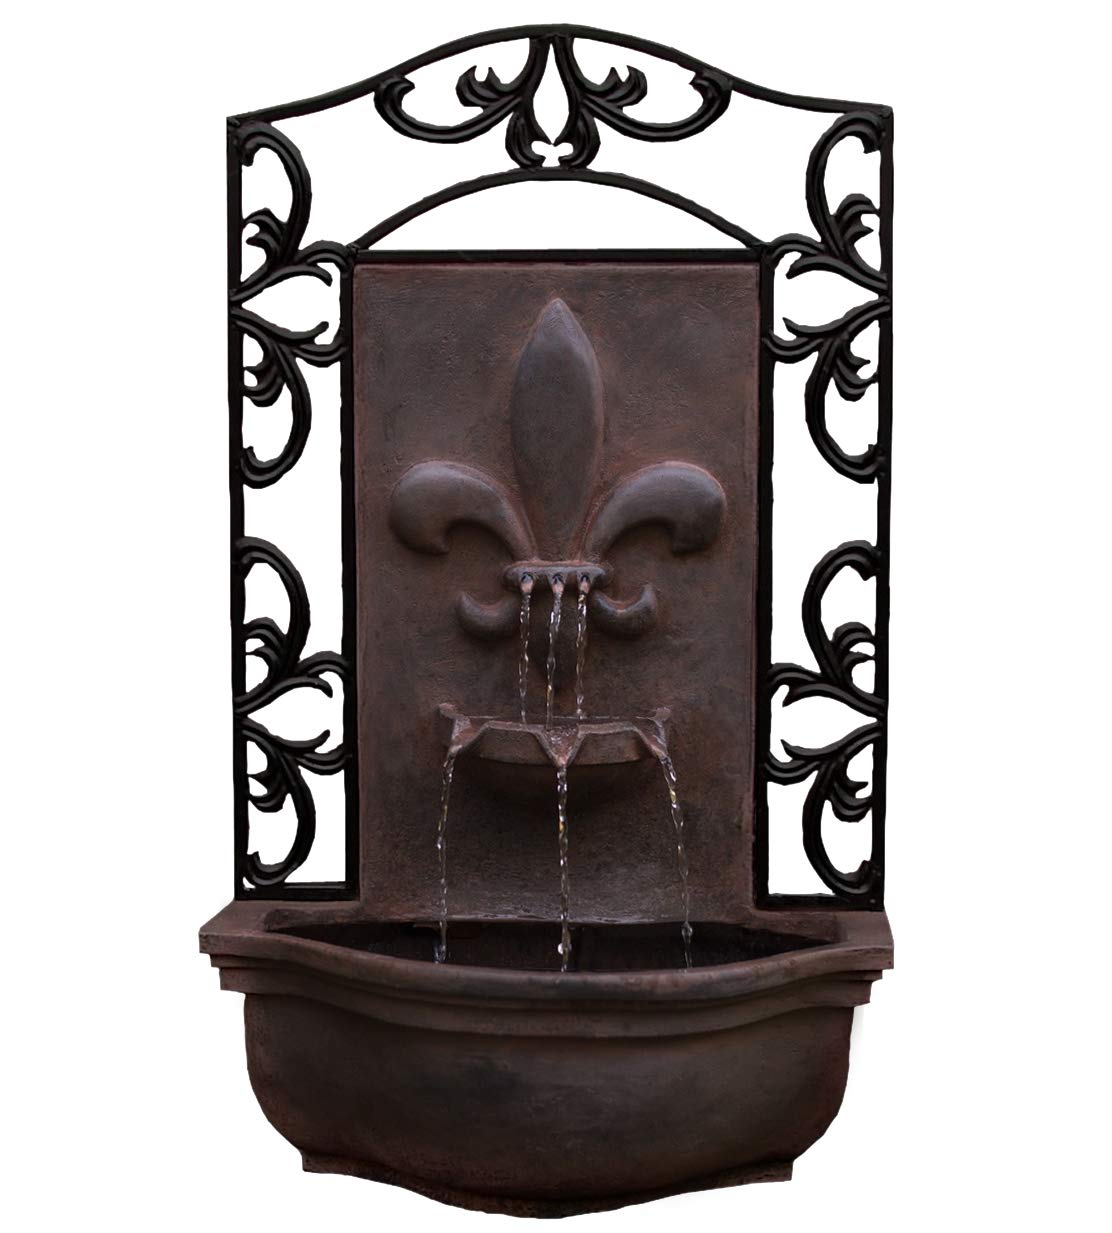 The Bordeaux - Outdoor Wall Fountain - Weathered Bronze - Water Feature for Garden, Patio and Landscape Enhancement by Harmony Fountains